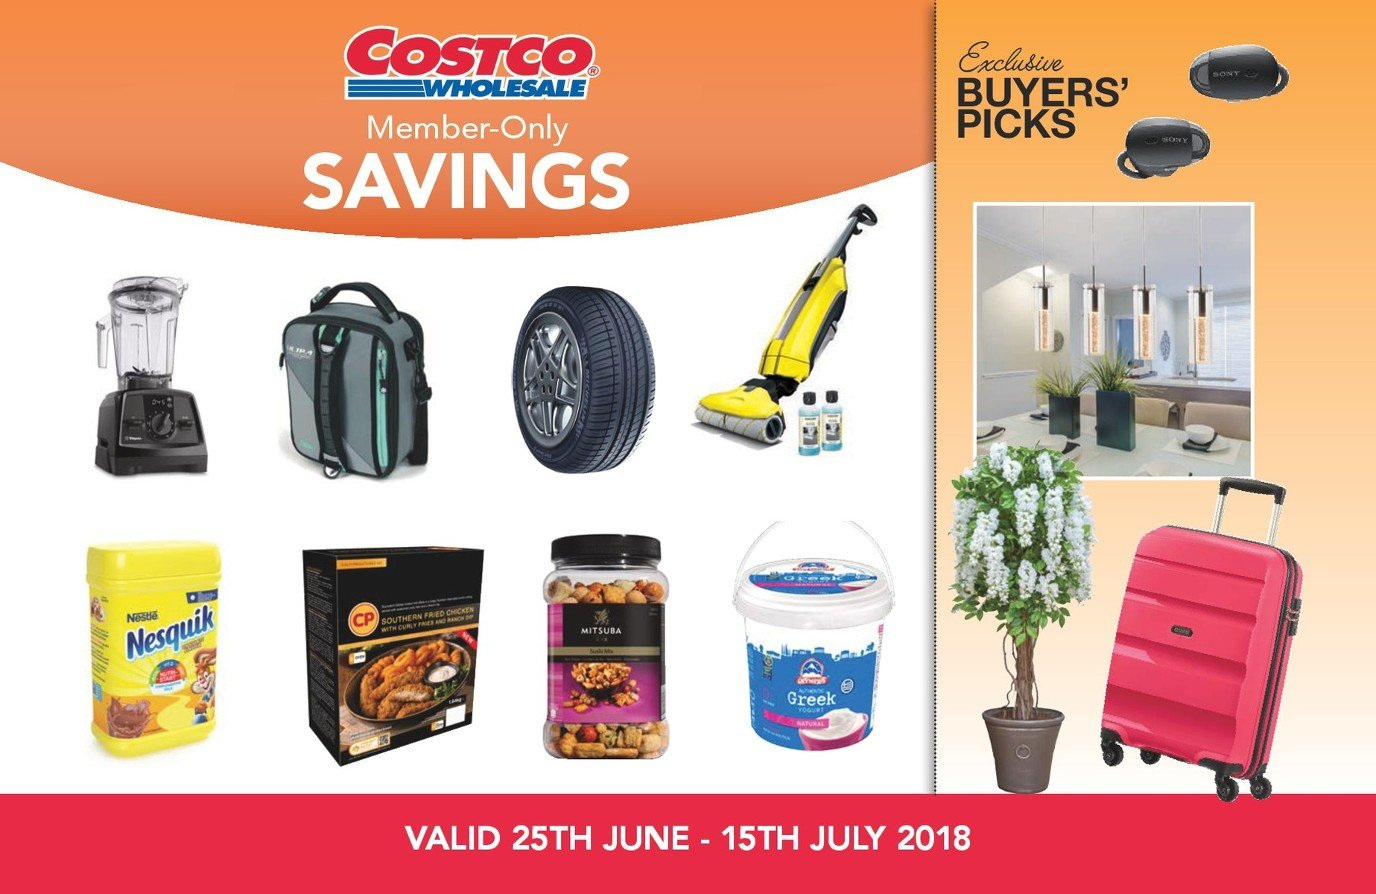 Costco offer  - 25.6.2018 - 15.7.2018. Page 1.